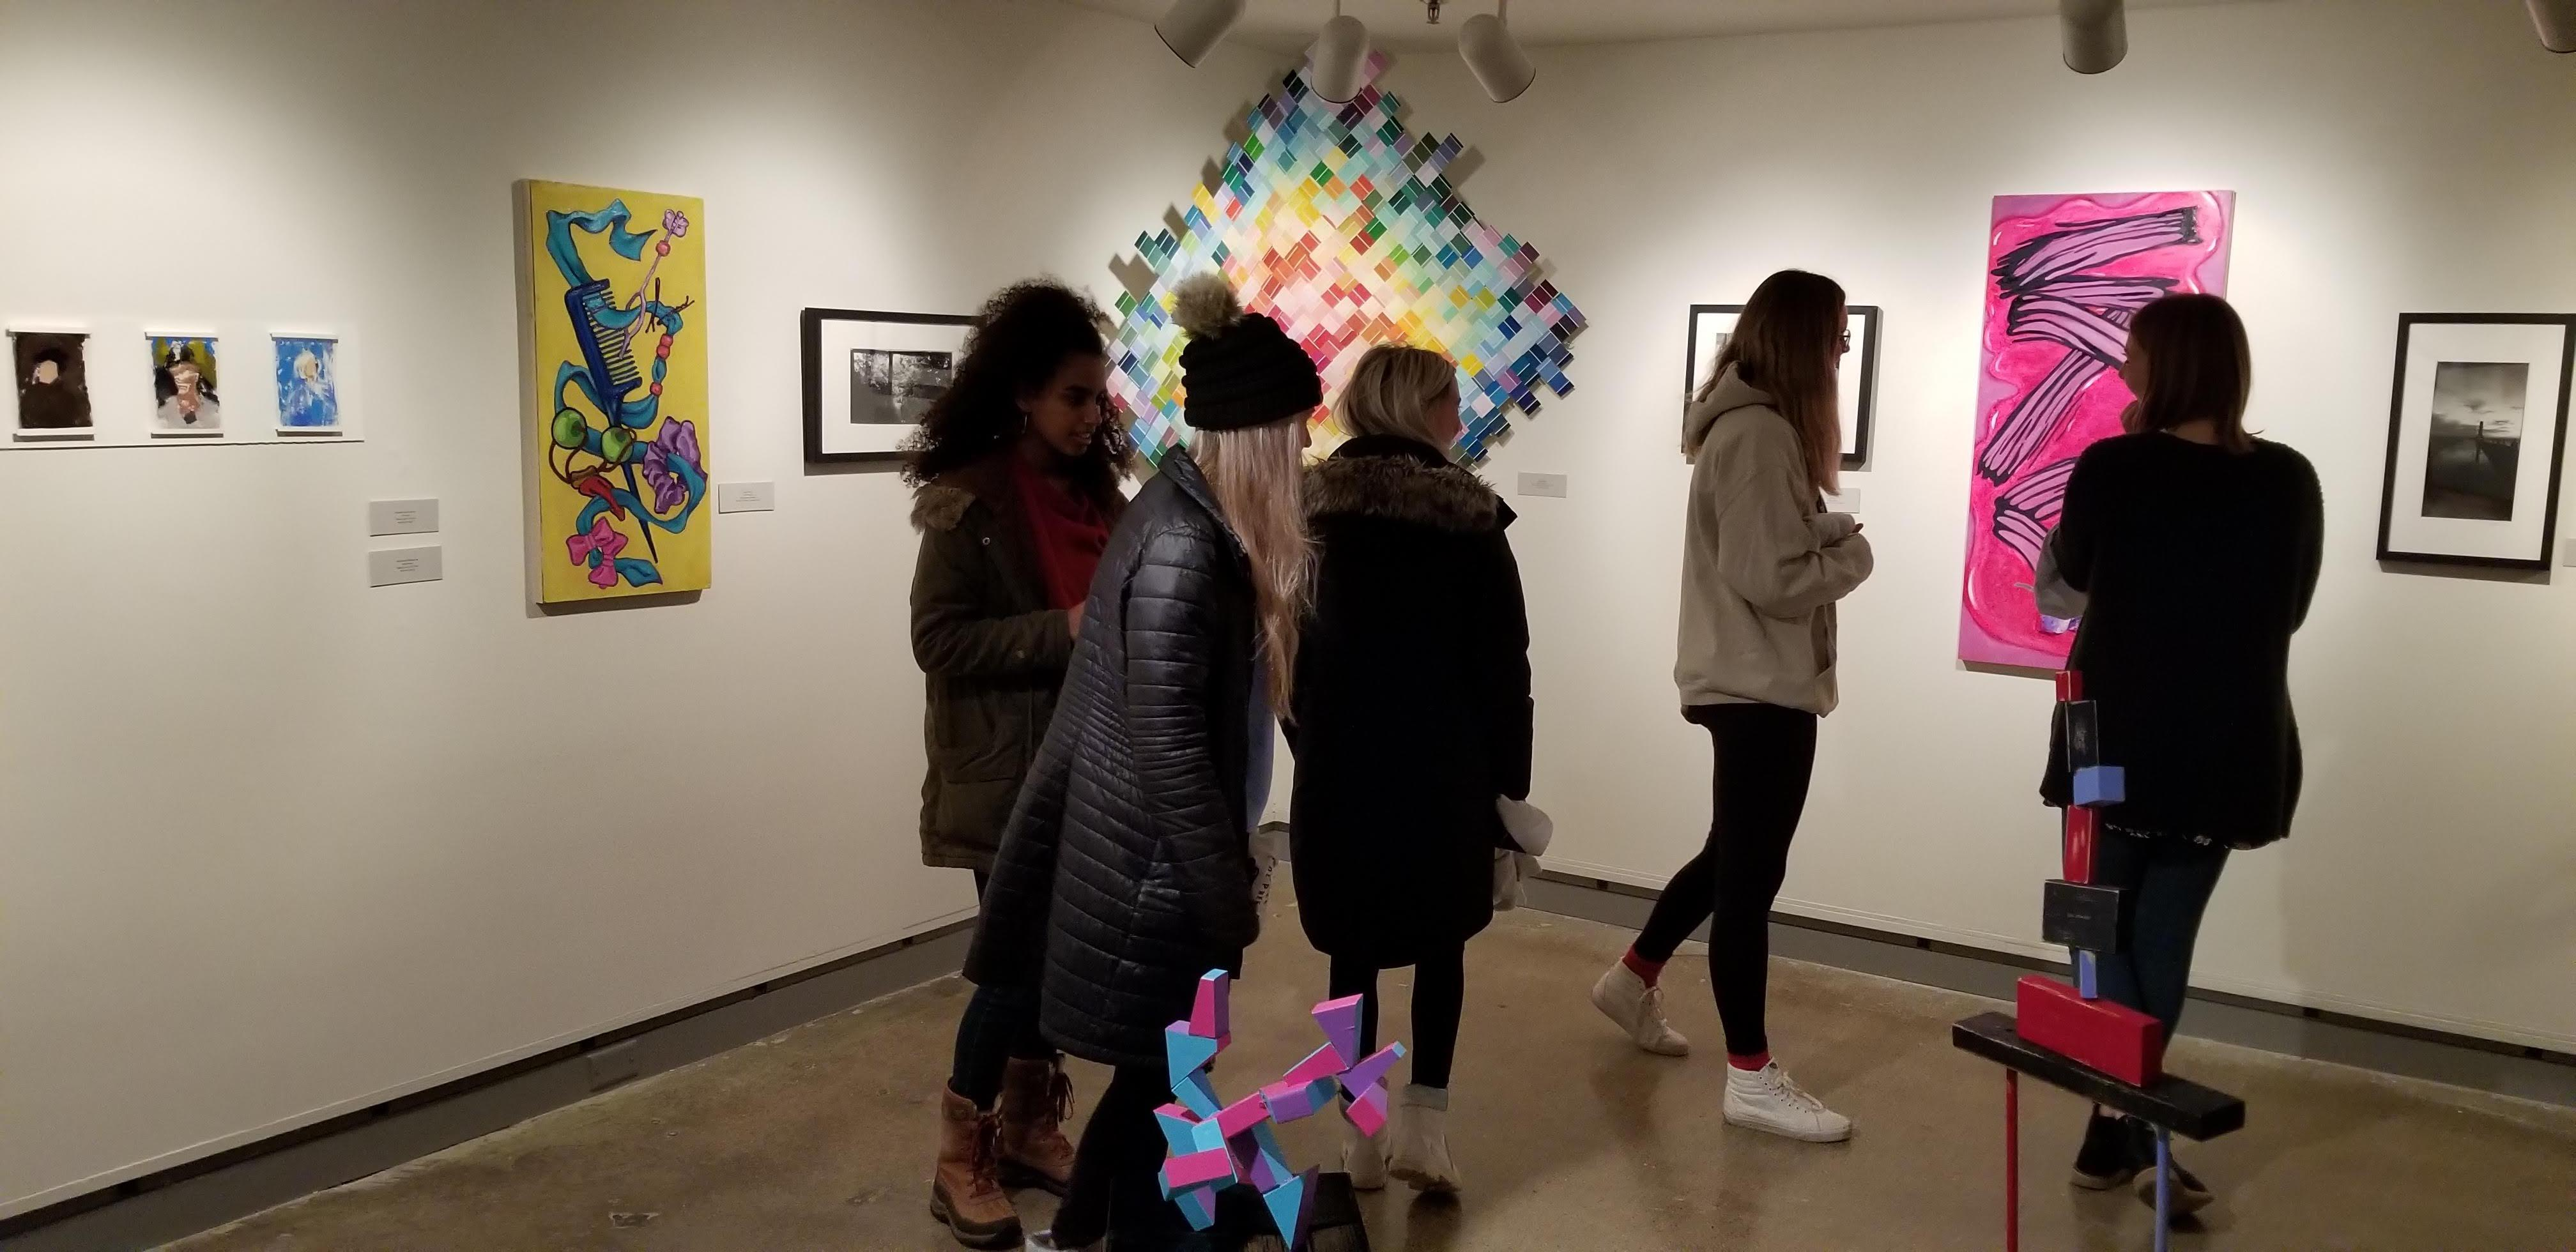 People standing around looking at art on display in the gallery during the Juried Student Show.